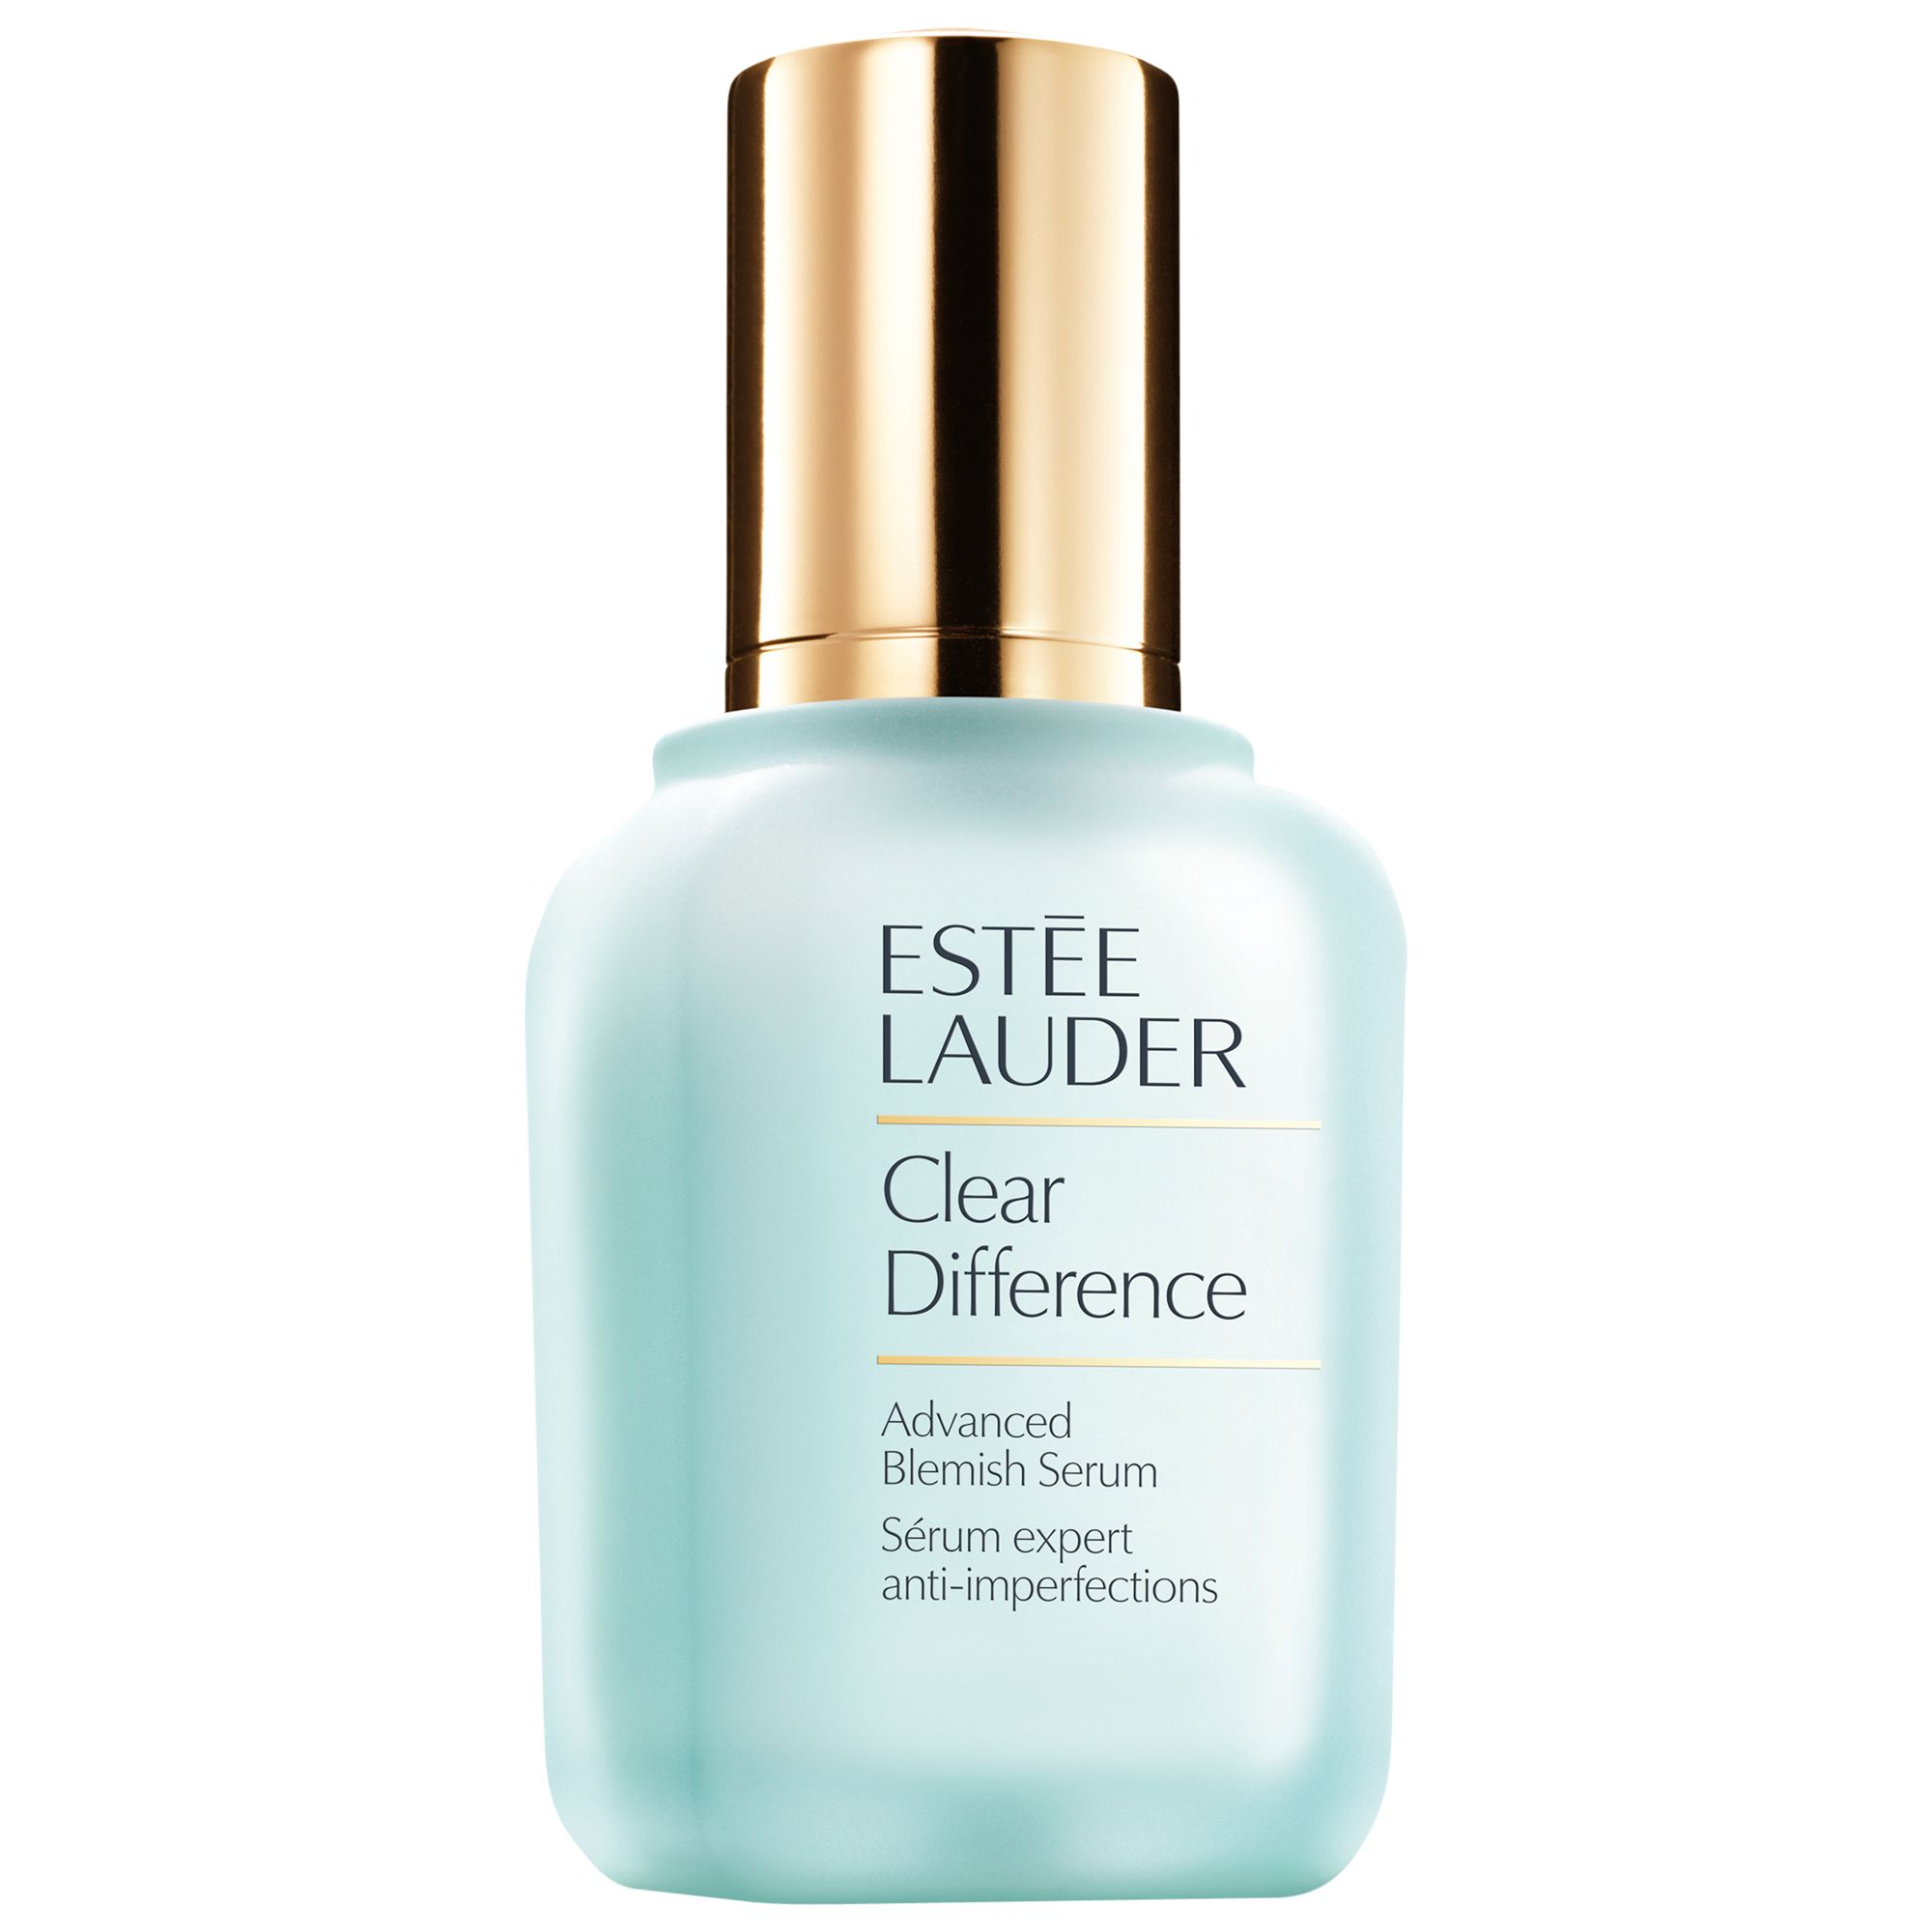 Estée Lauder Guide: Expert Skin Care Tips